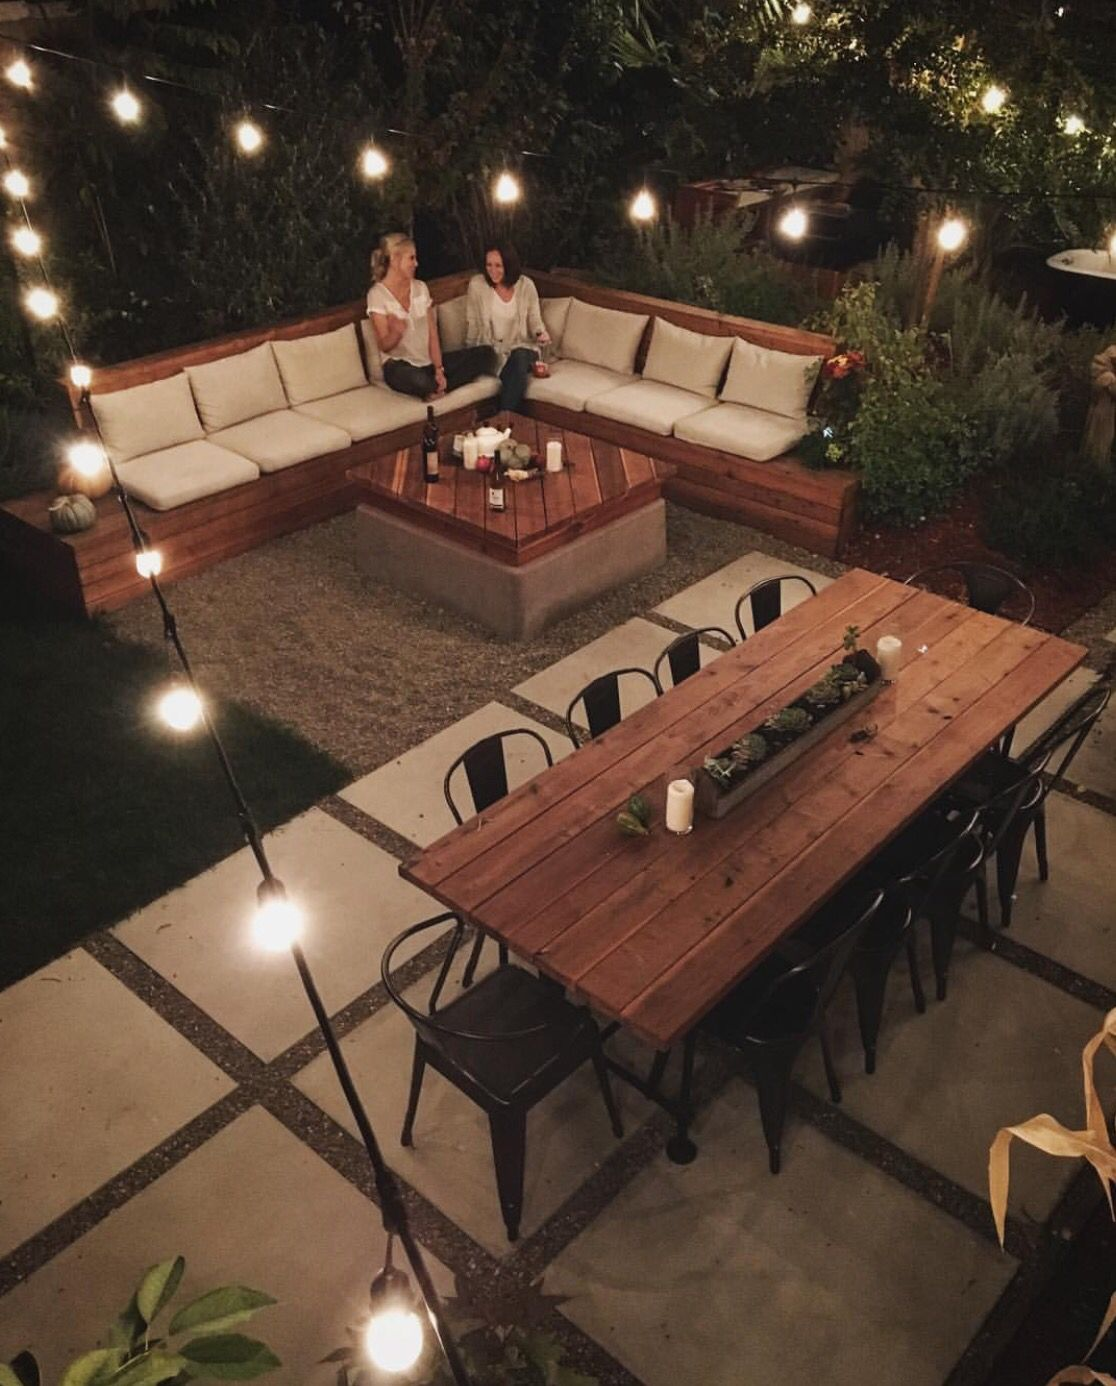 Awesome Backyard Ideas awesome backyard idea. can't forget the sectional, table, and